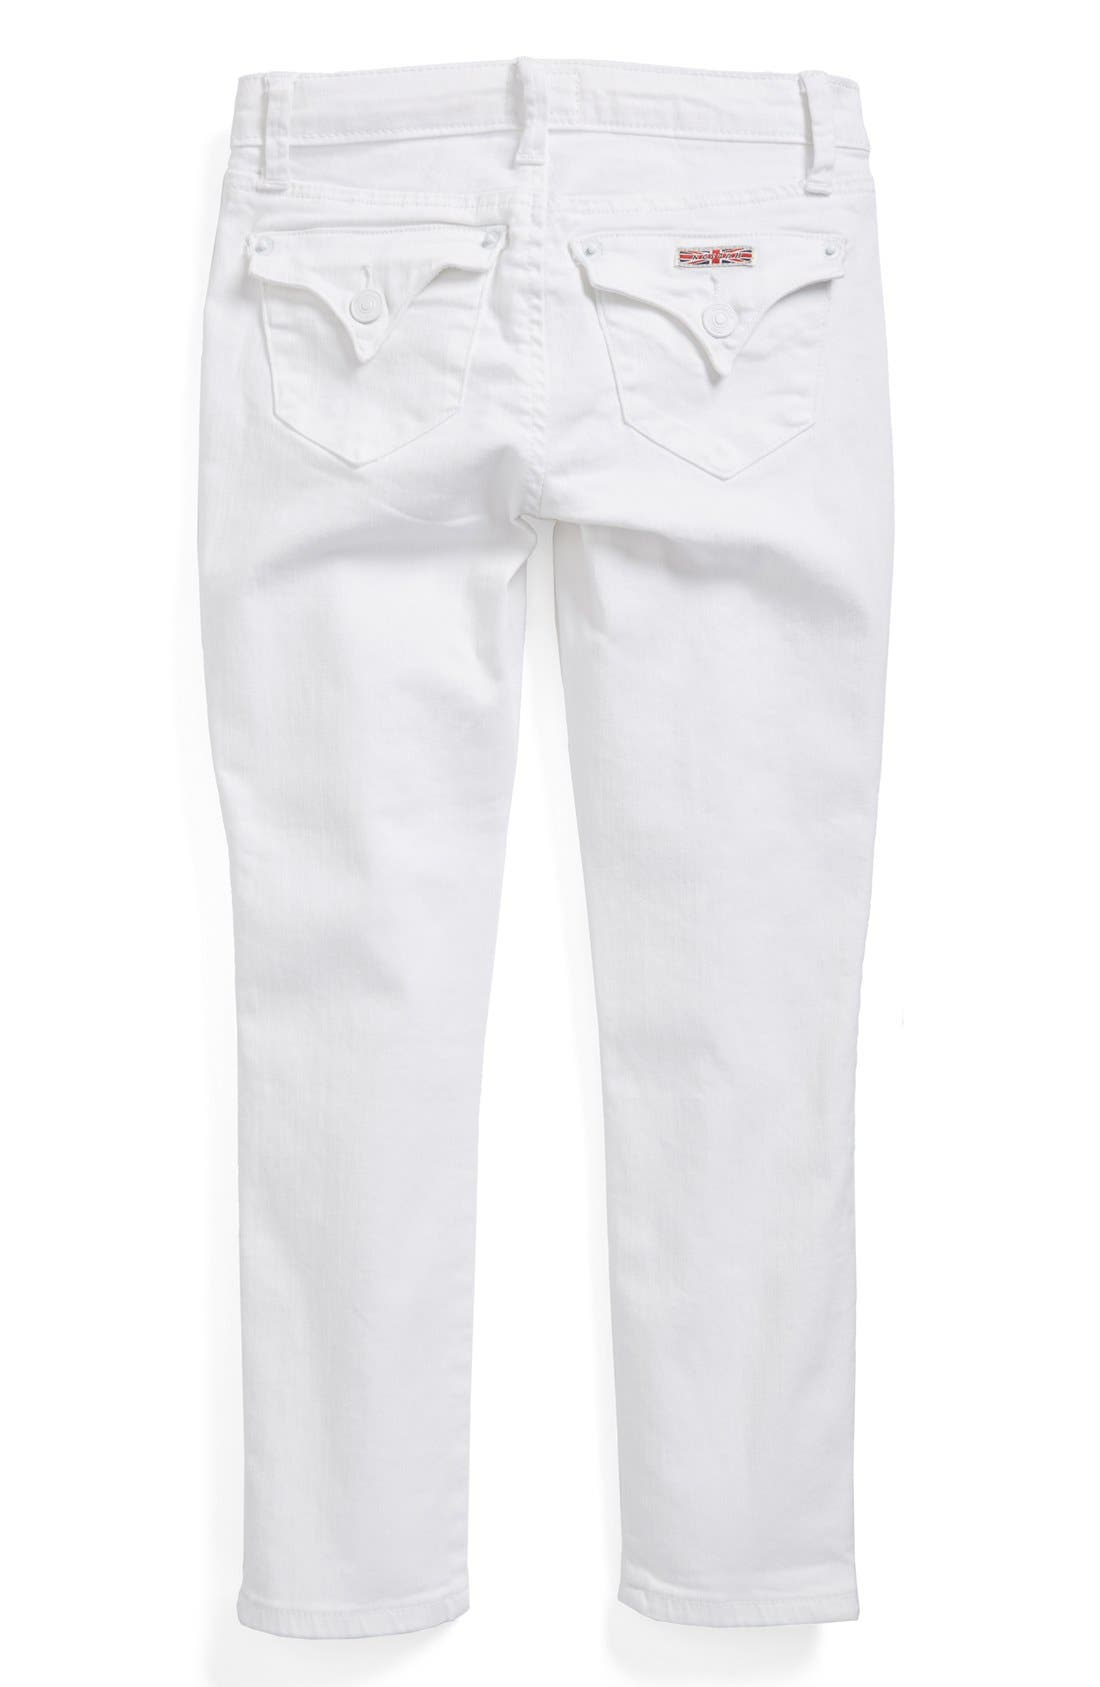 Main Image - Hudson Kids 'Collin' Skinny Jeans (Toddler Girls & Little Girls)